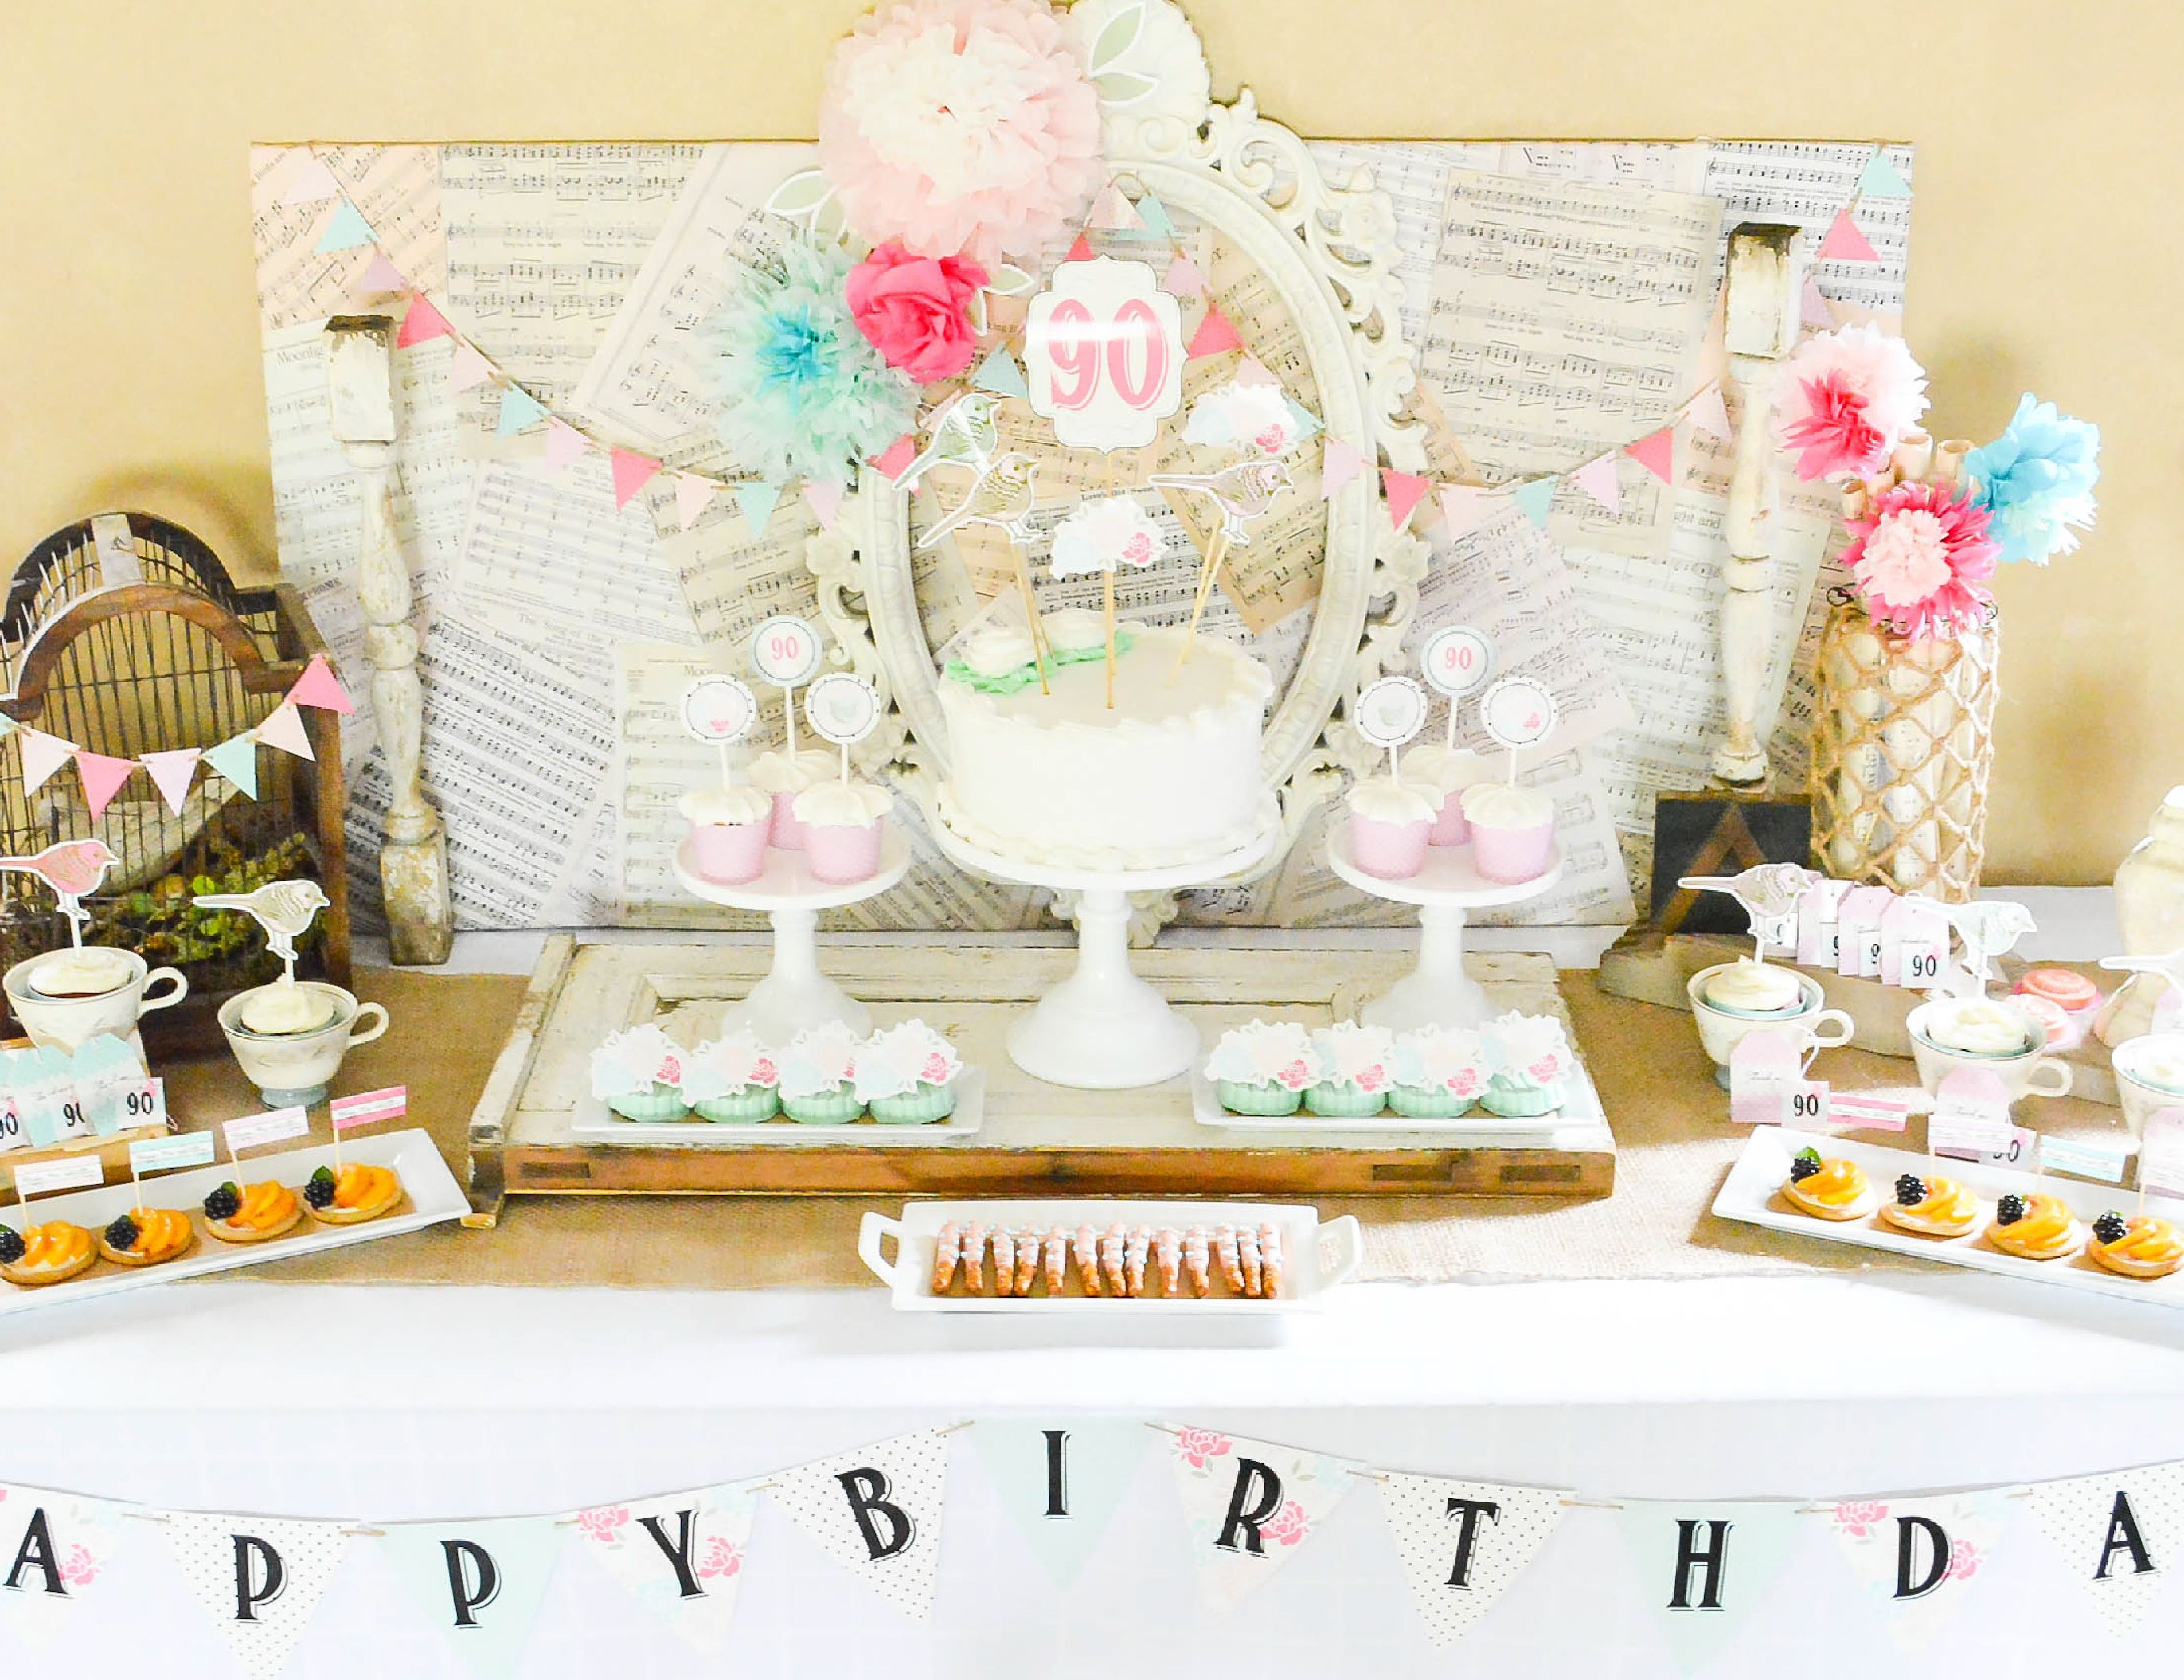 Shabby Chic Dessert Table for a Vintage Shabby Chic 90th birthday